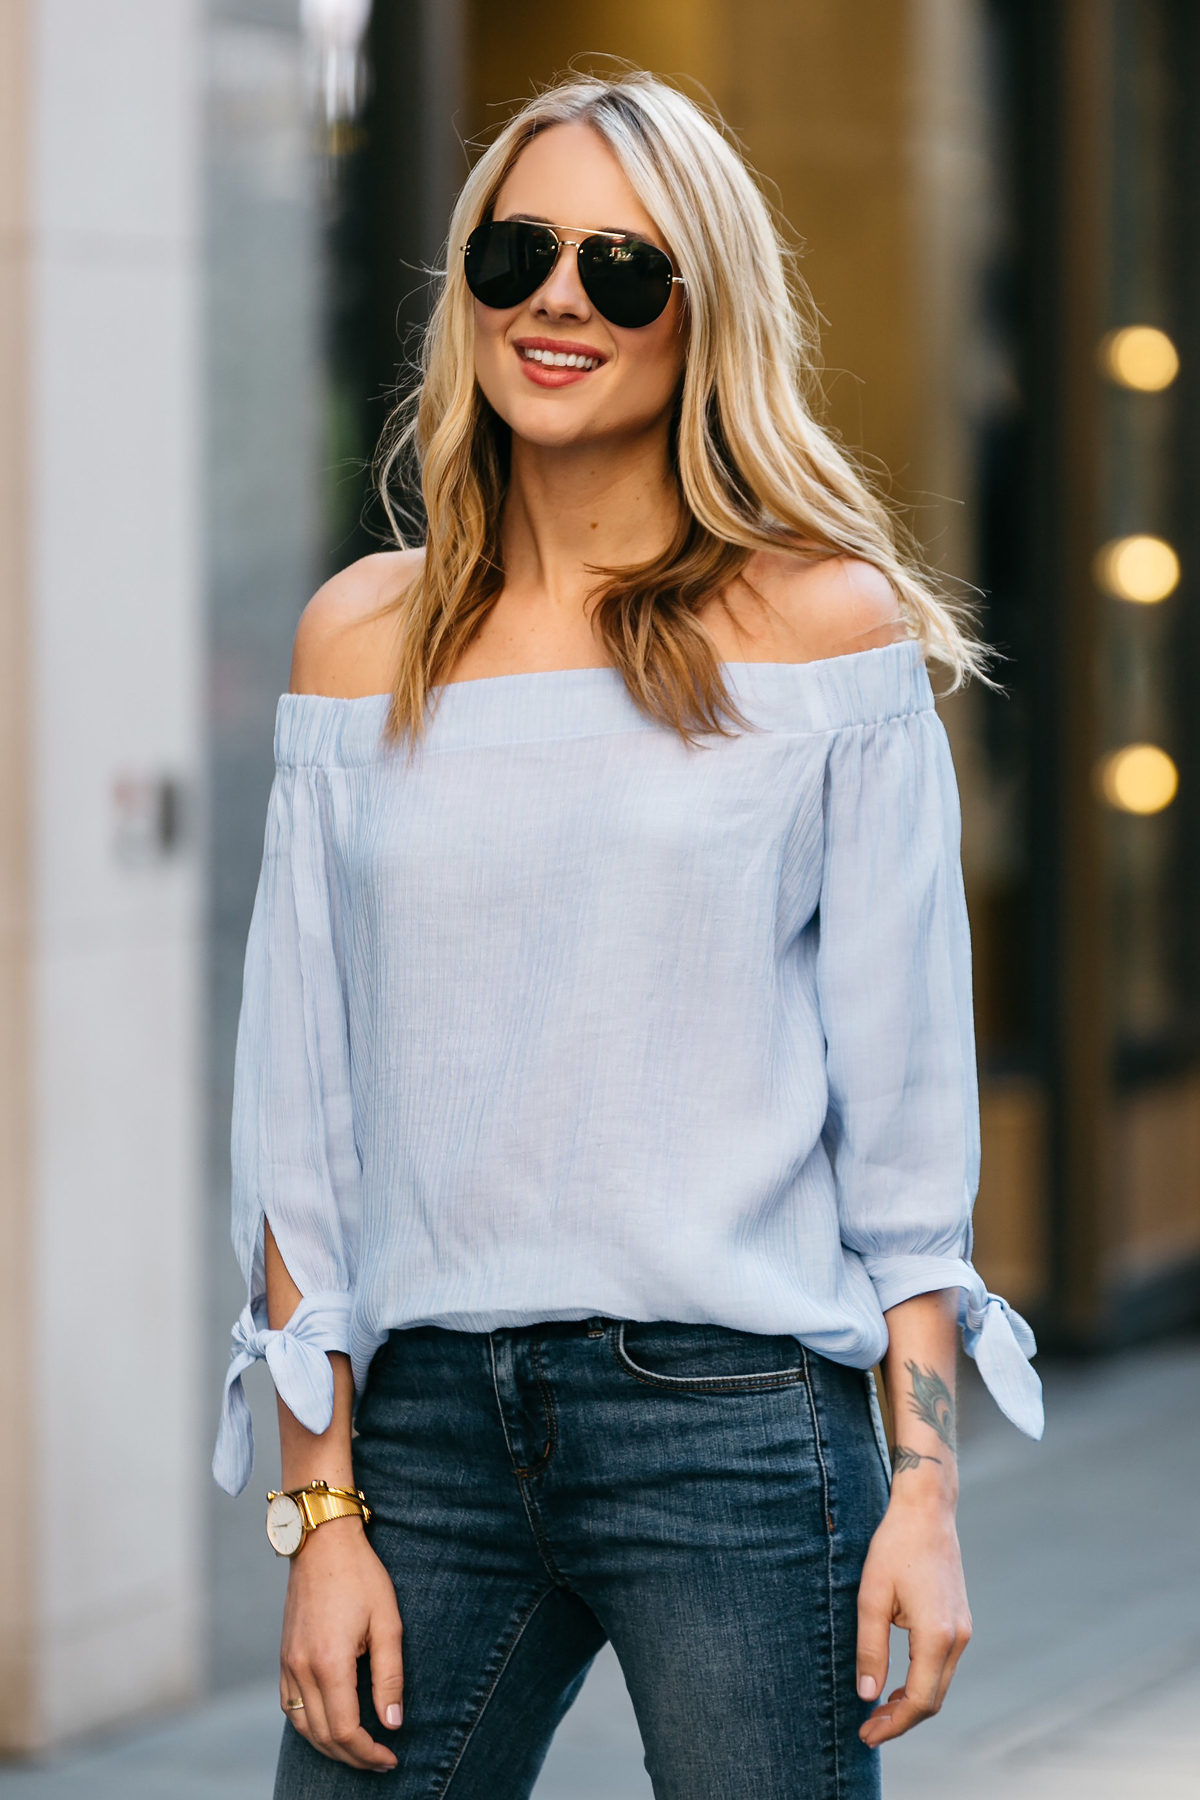 Fashion Jackson, Dallas Blogger, Fashion Blogger, Street Style, Ann Taylor Blue Tie Off-the-shoulder Top, Denim Skinny Jeans, Celine Aviator Sunglasses